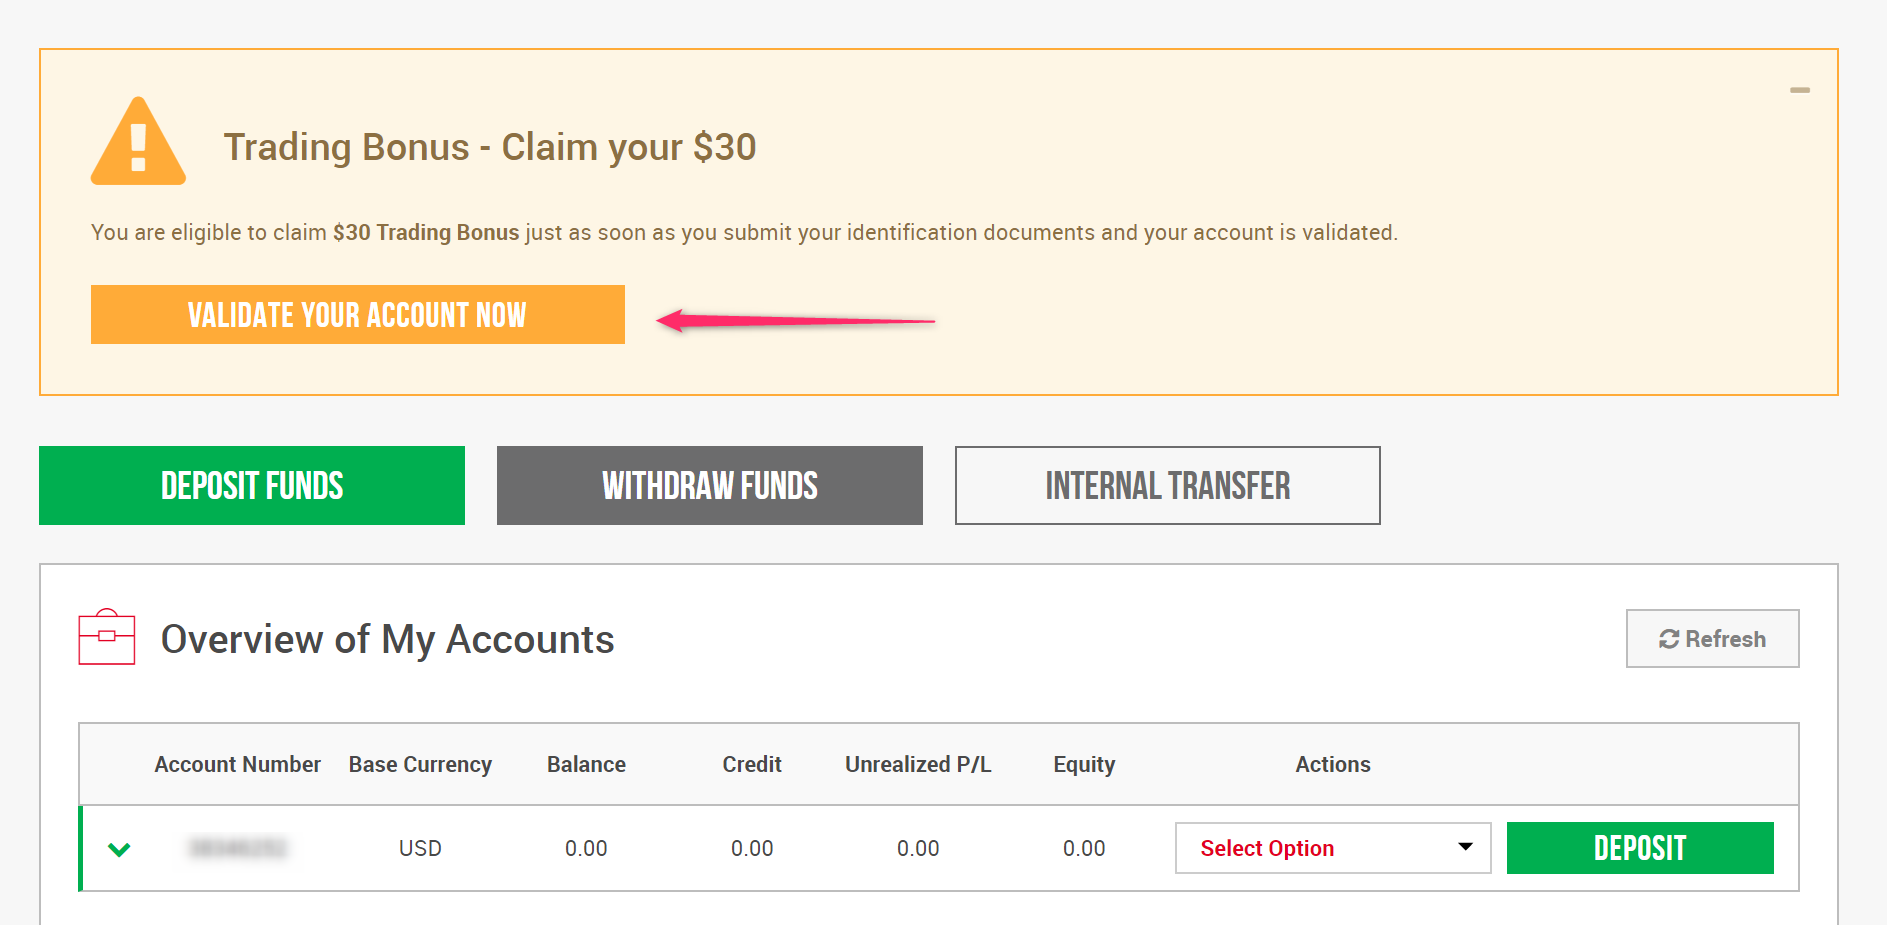 VALIDATE YOUR ACCOUNT XM